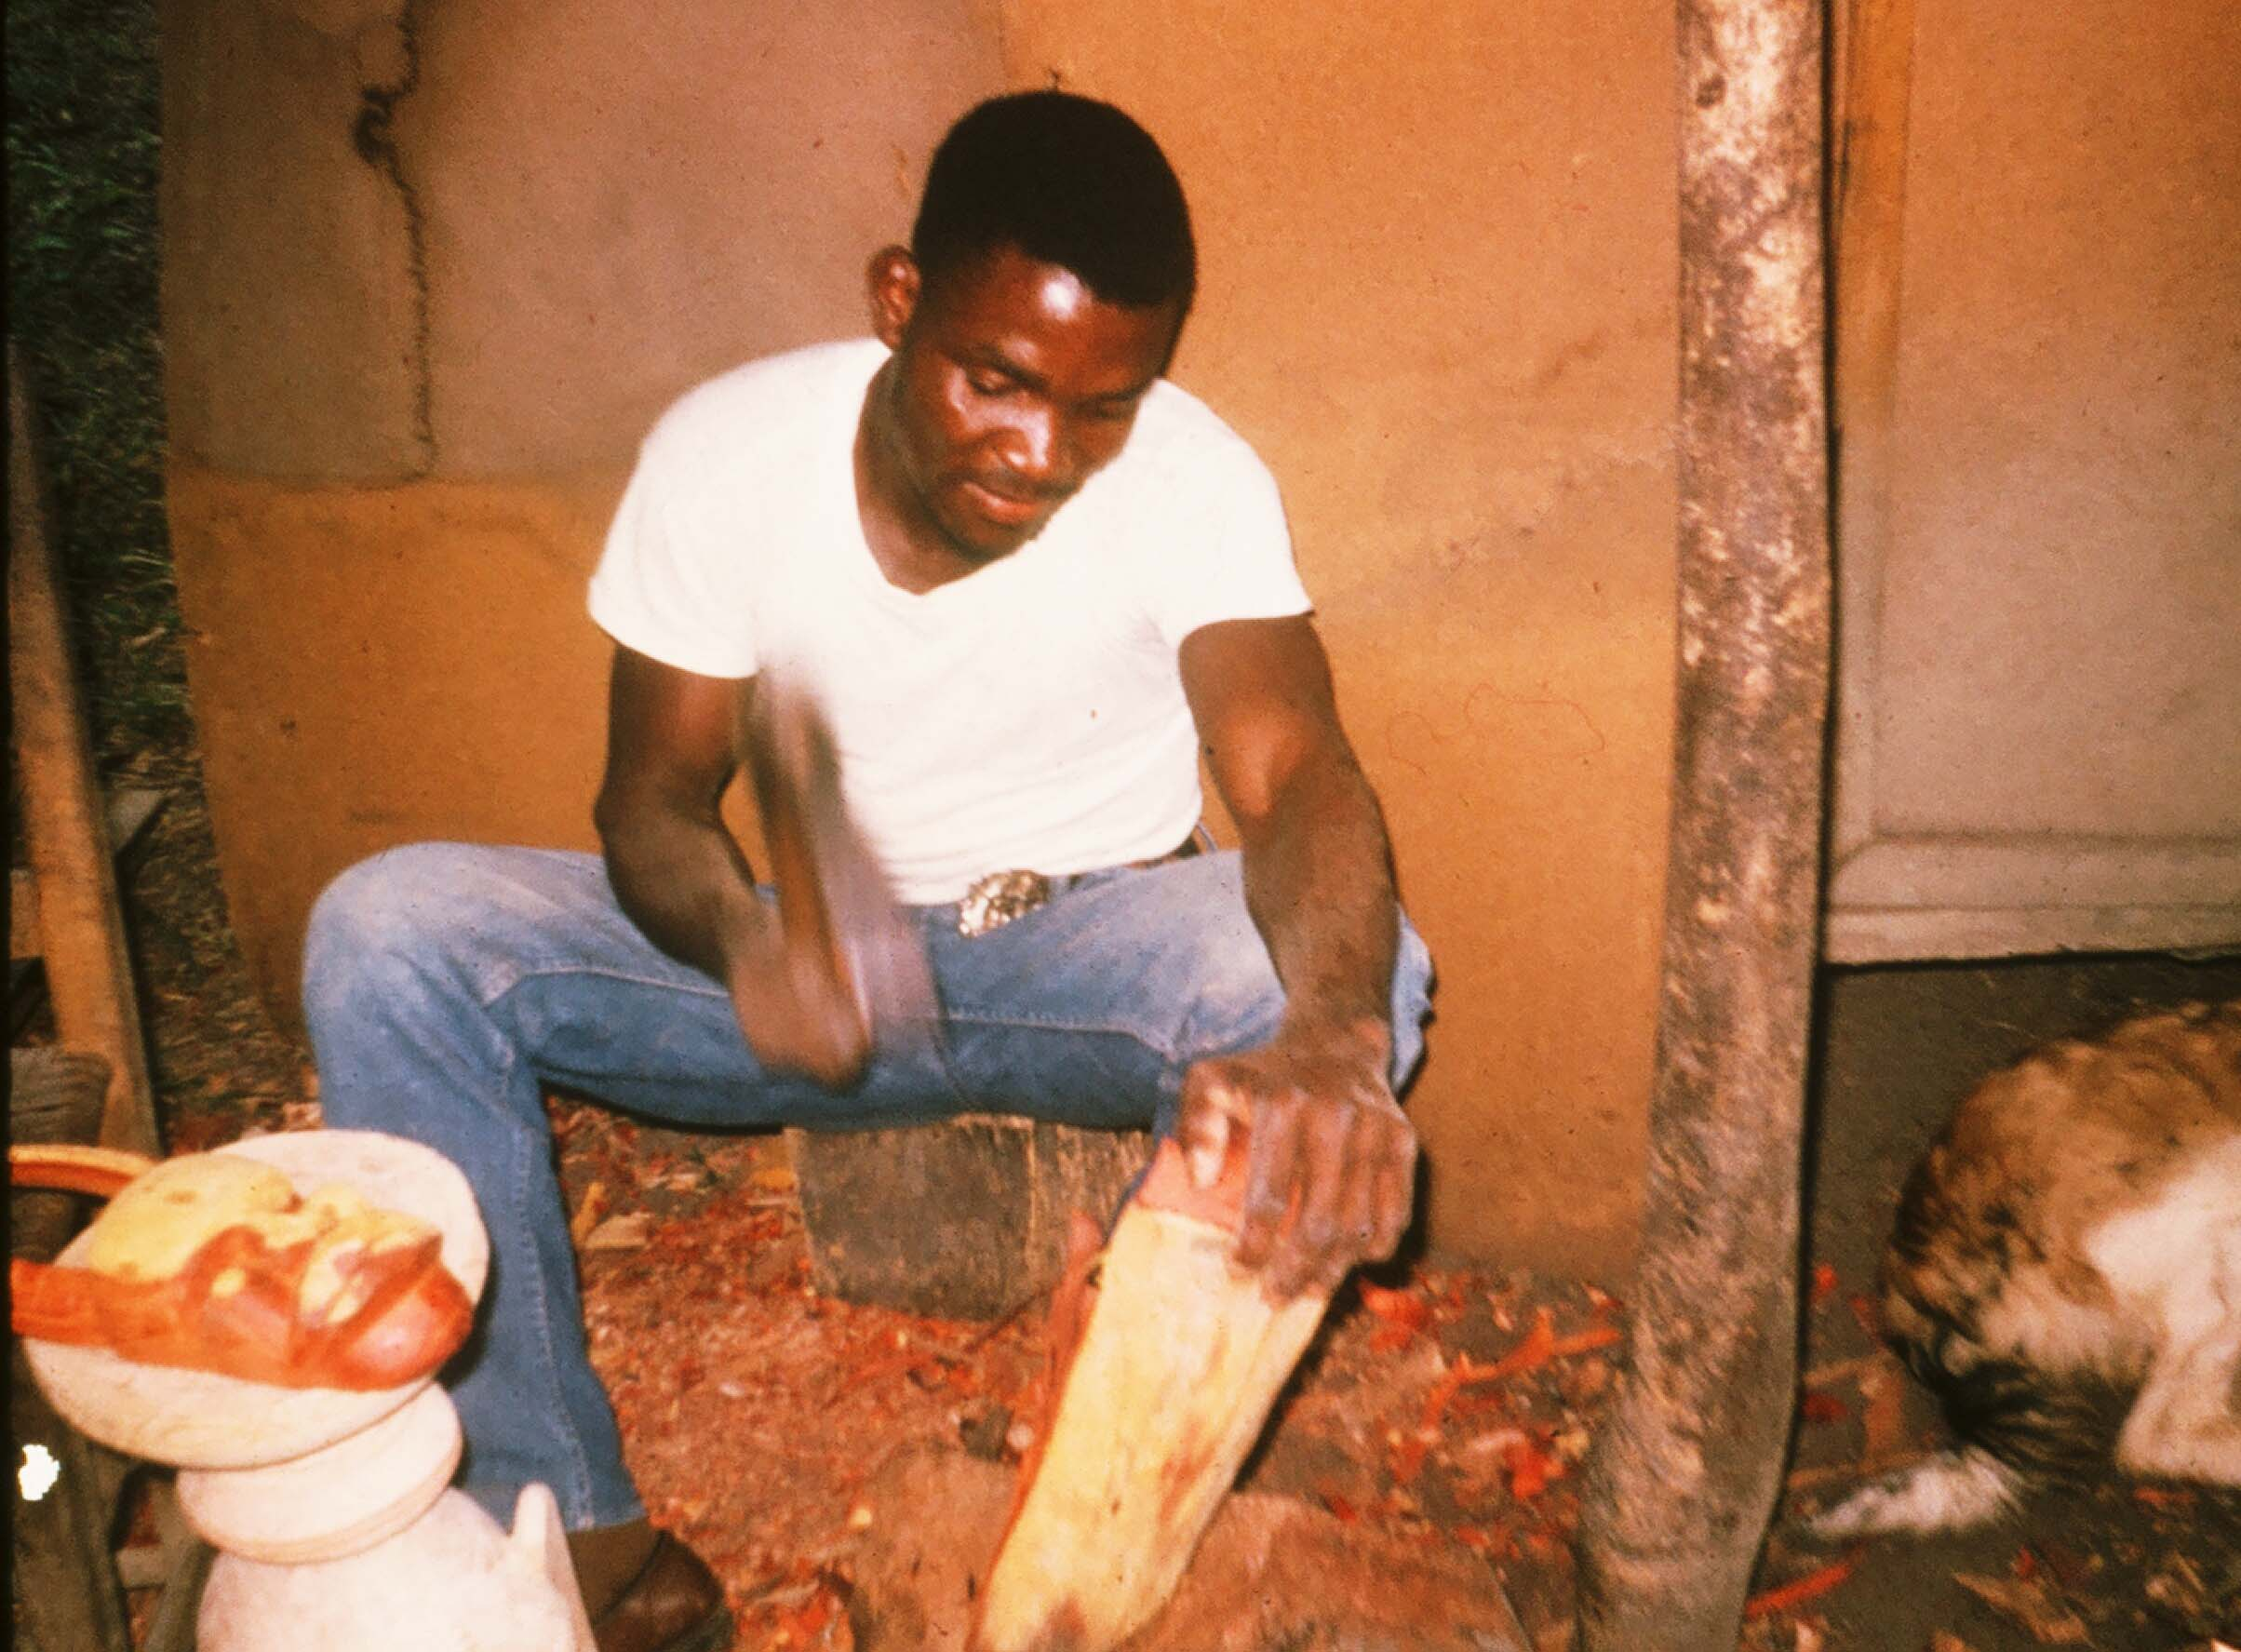 """The """"Bush Devil"""" featured on the cover of my book was created by Freddy the Carver shown here. Freddy was a leper who lived in a leper colony in Ganta, Liberia circa 1965."""